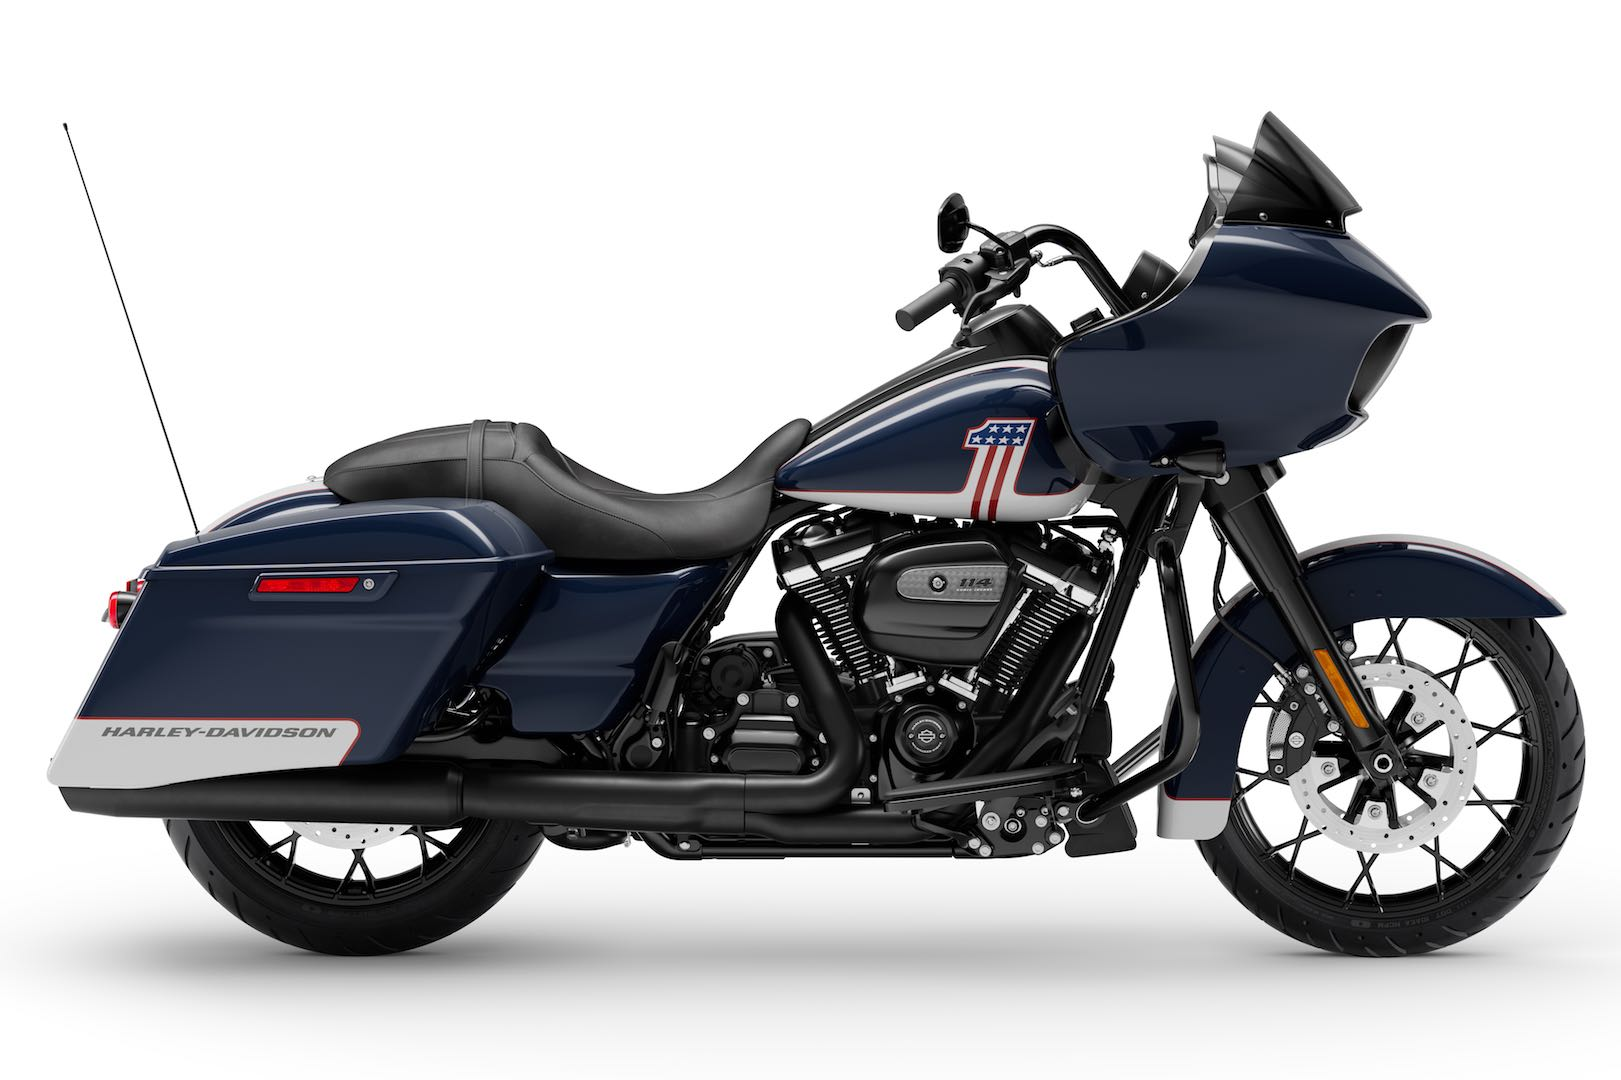 2020 Harley Street Glide Special with Blue Patriotic Paint